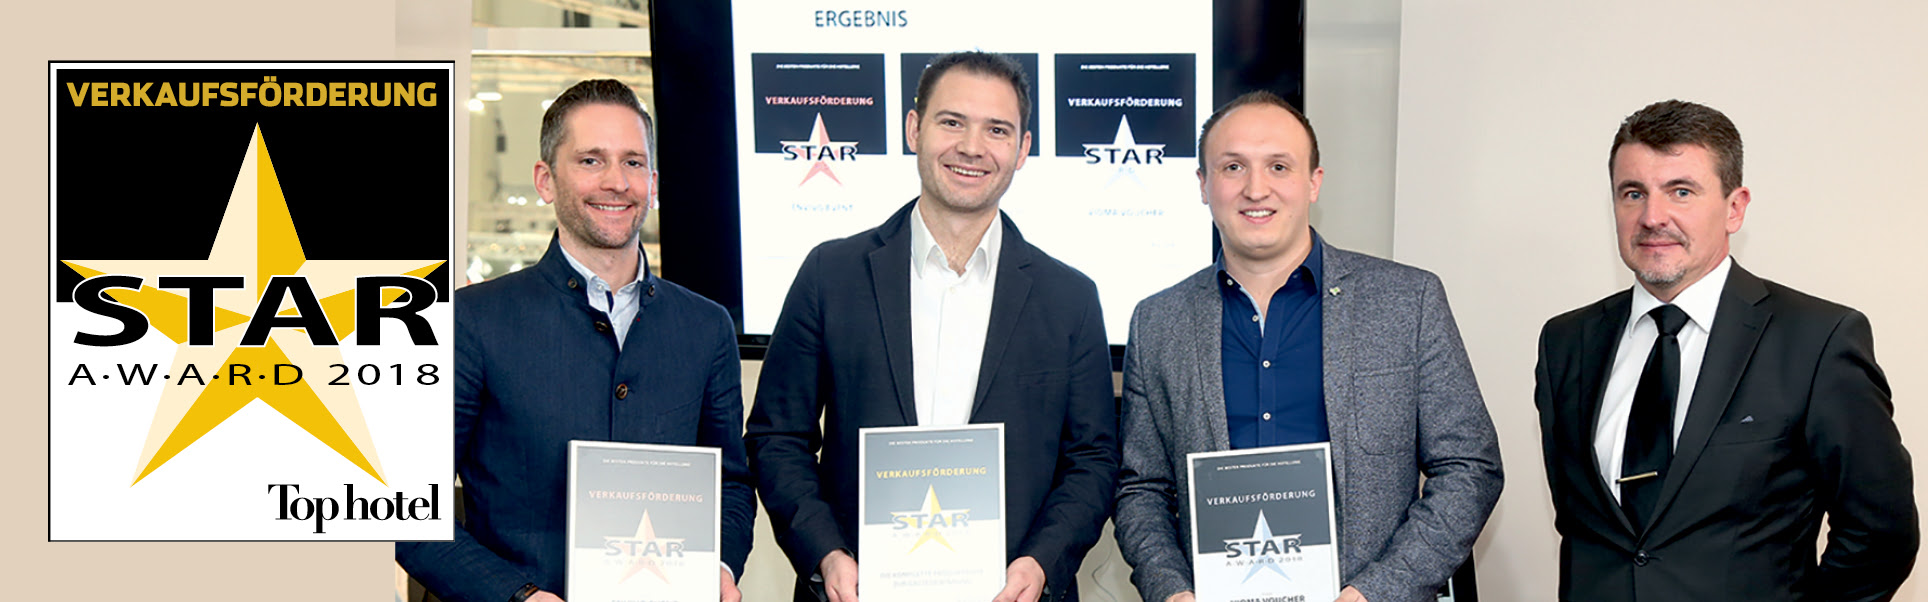 SiteMinder wins a gold Top hotel Star Award